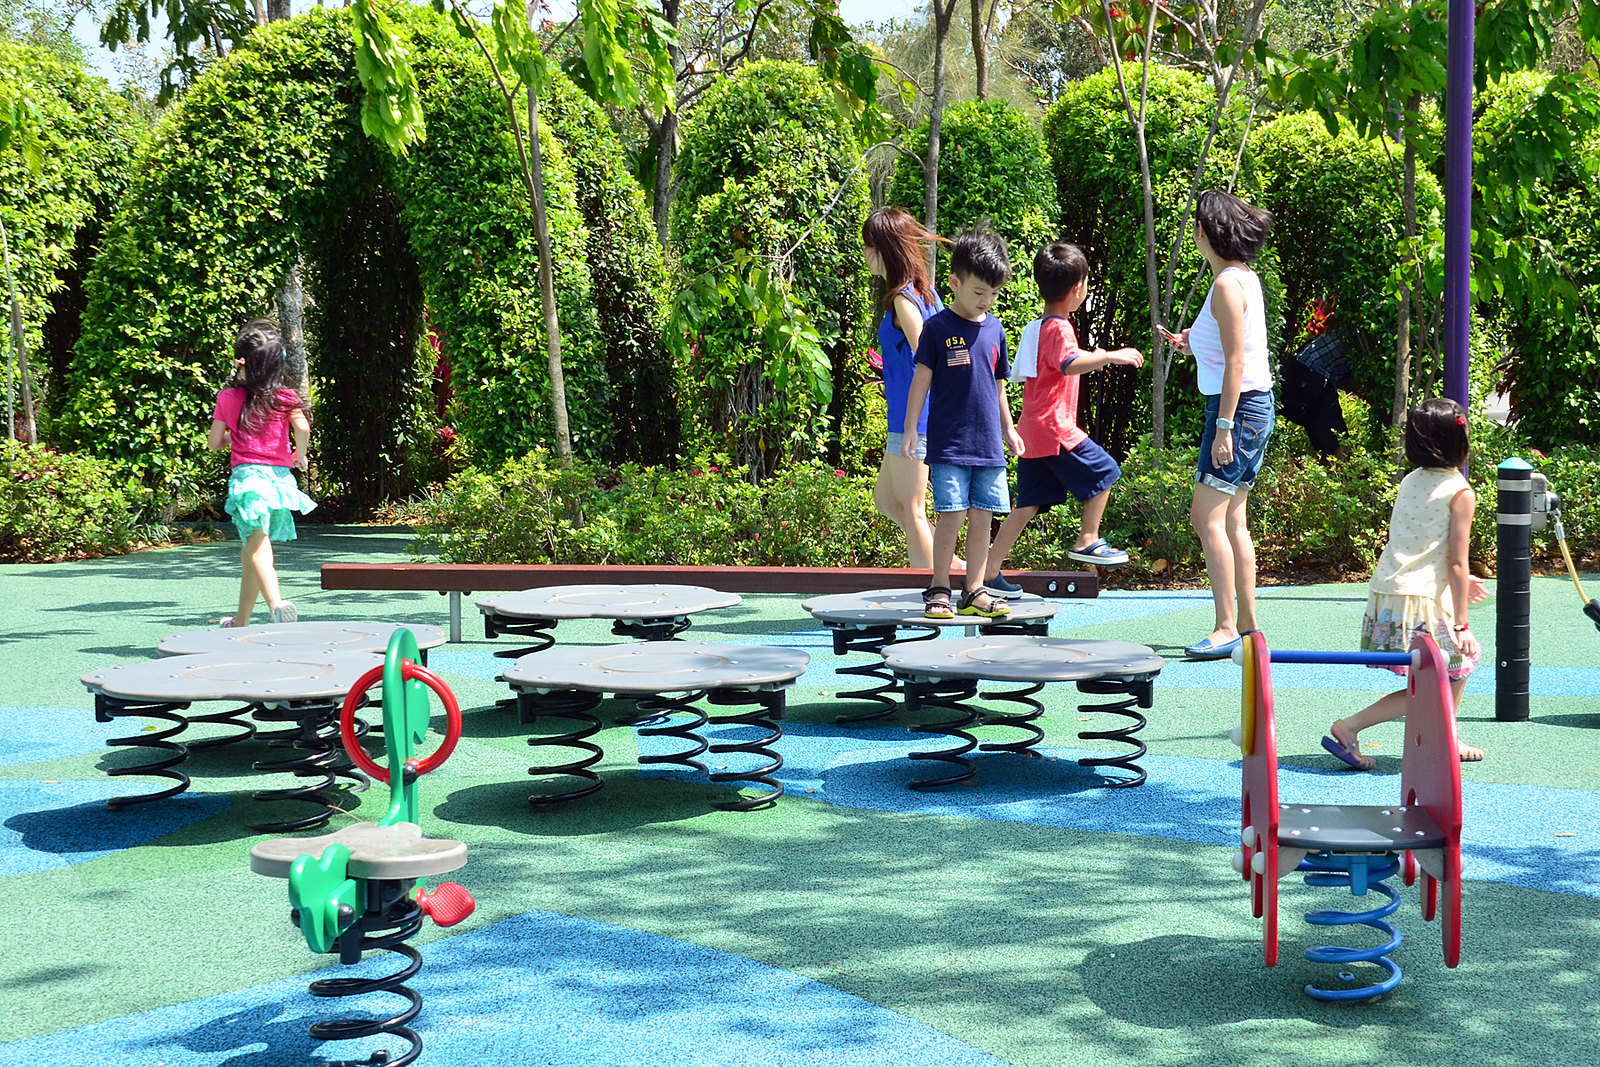 far east organization children's garden outdoor playground singapore